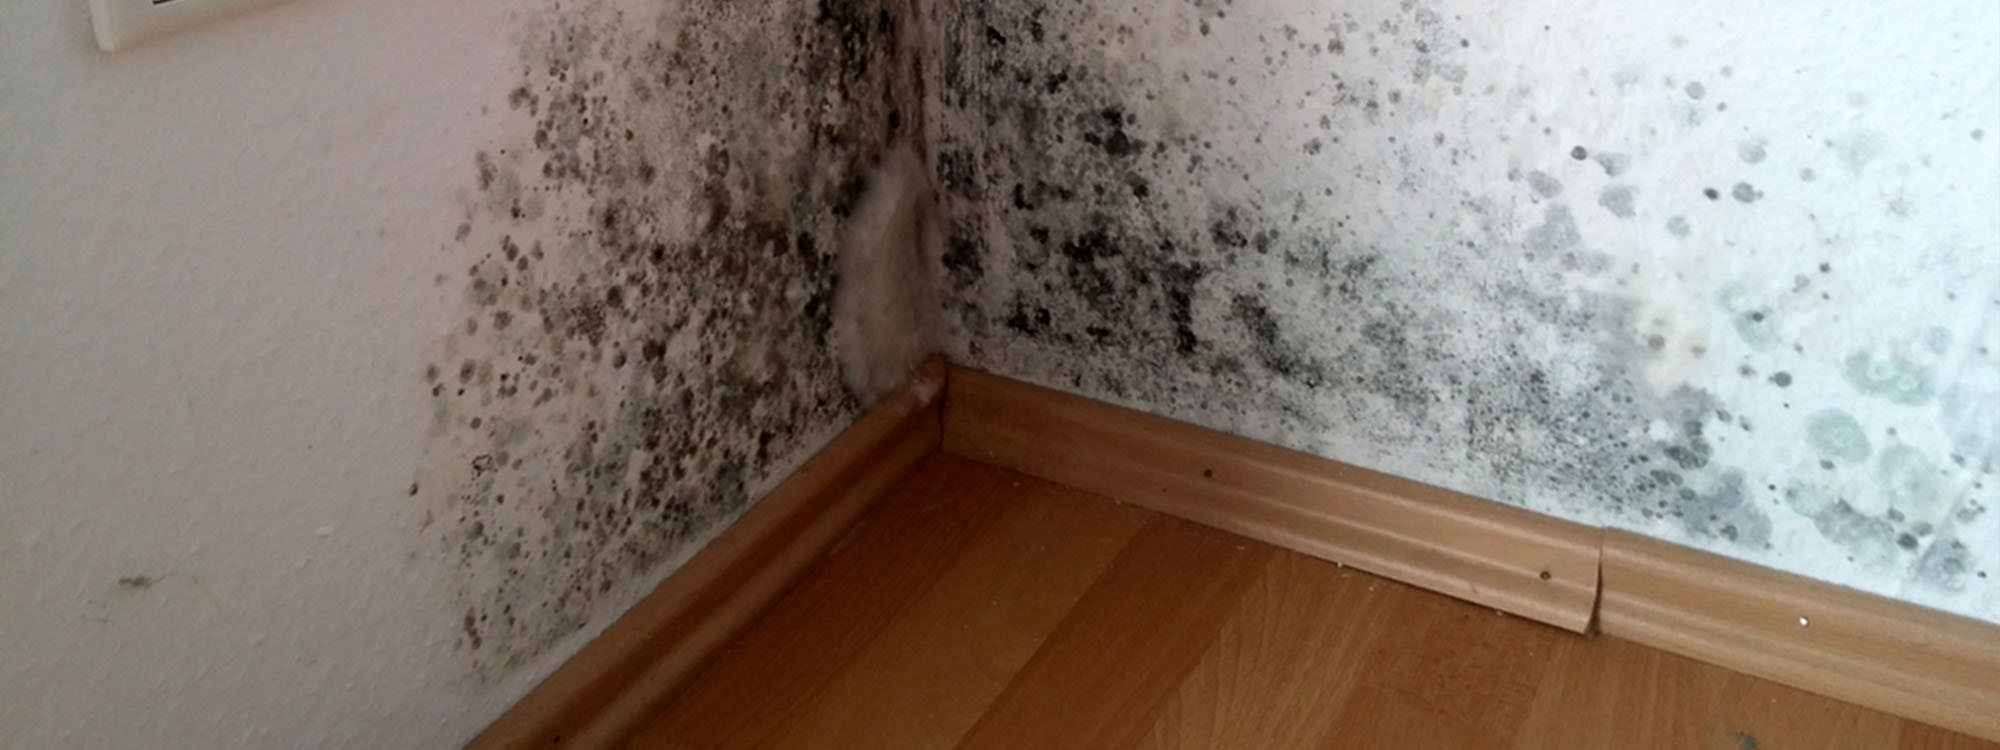 black mould in corner of room condensation